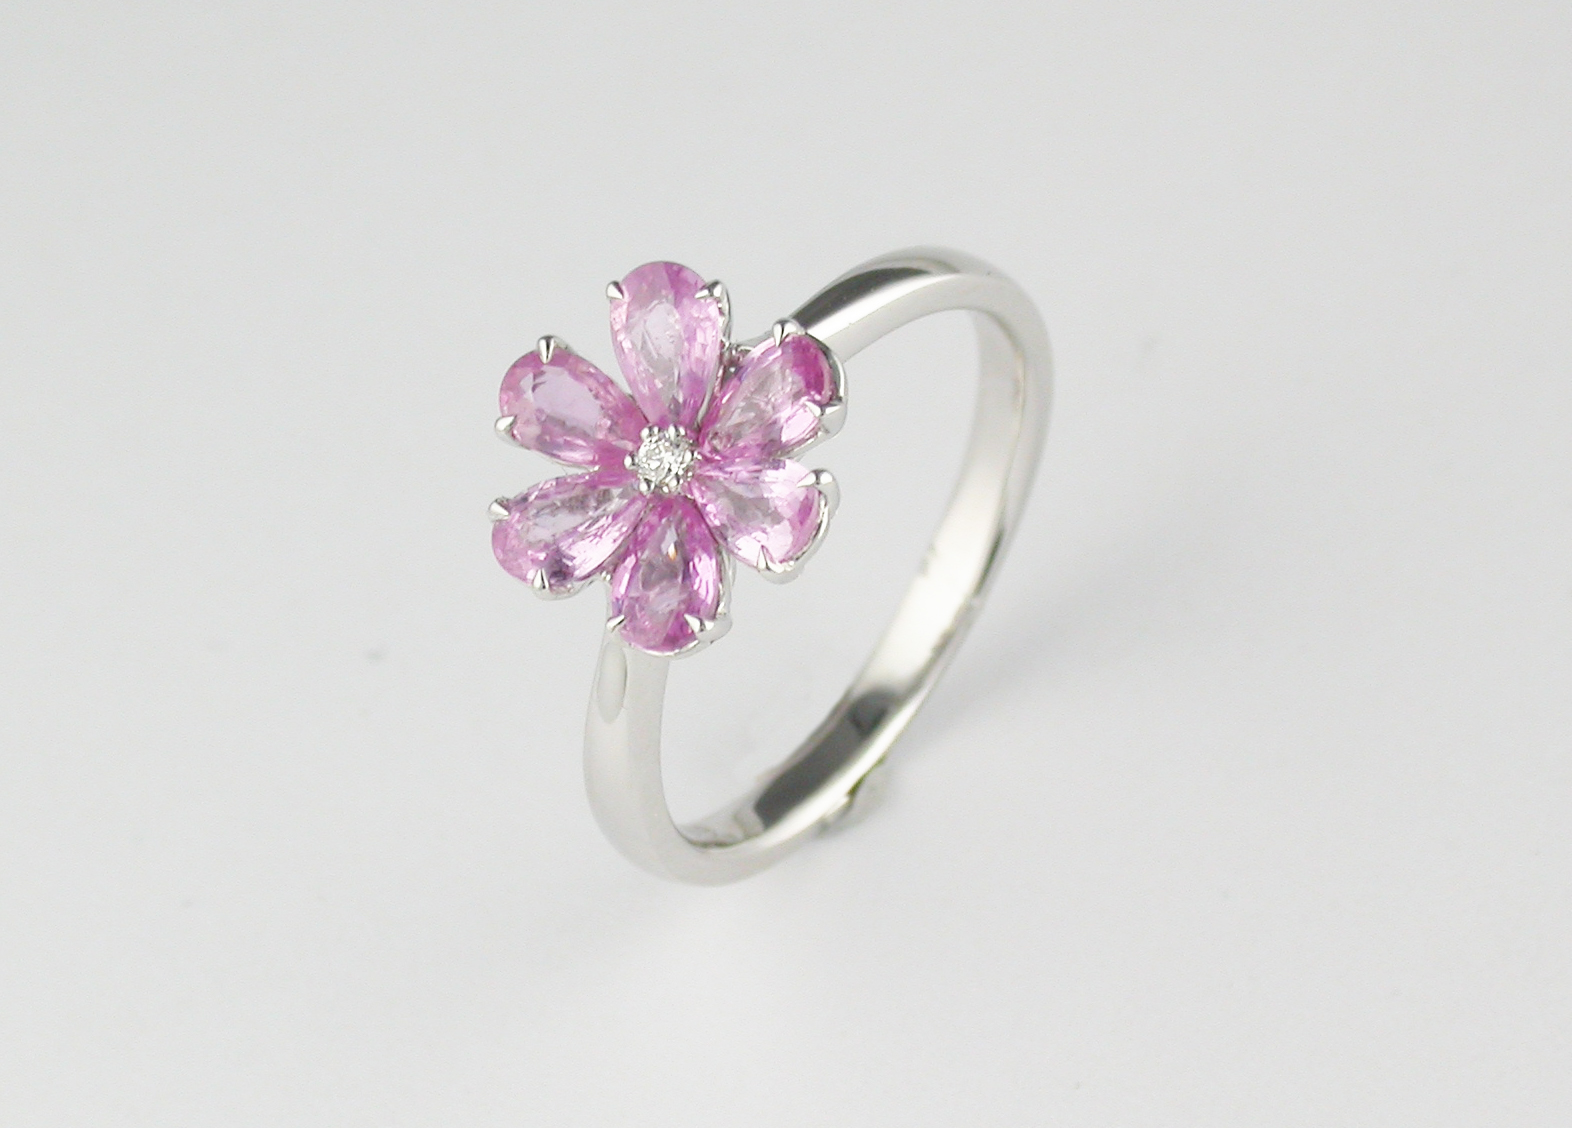 Adorn Jewels, Adelaide Designer, Engagement rings, Jeweller